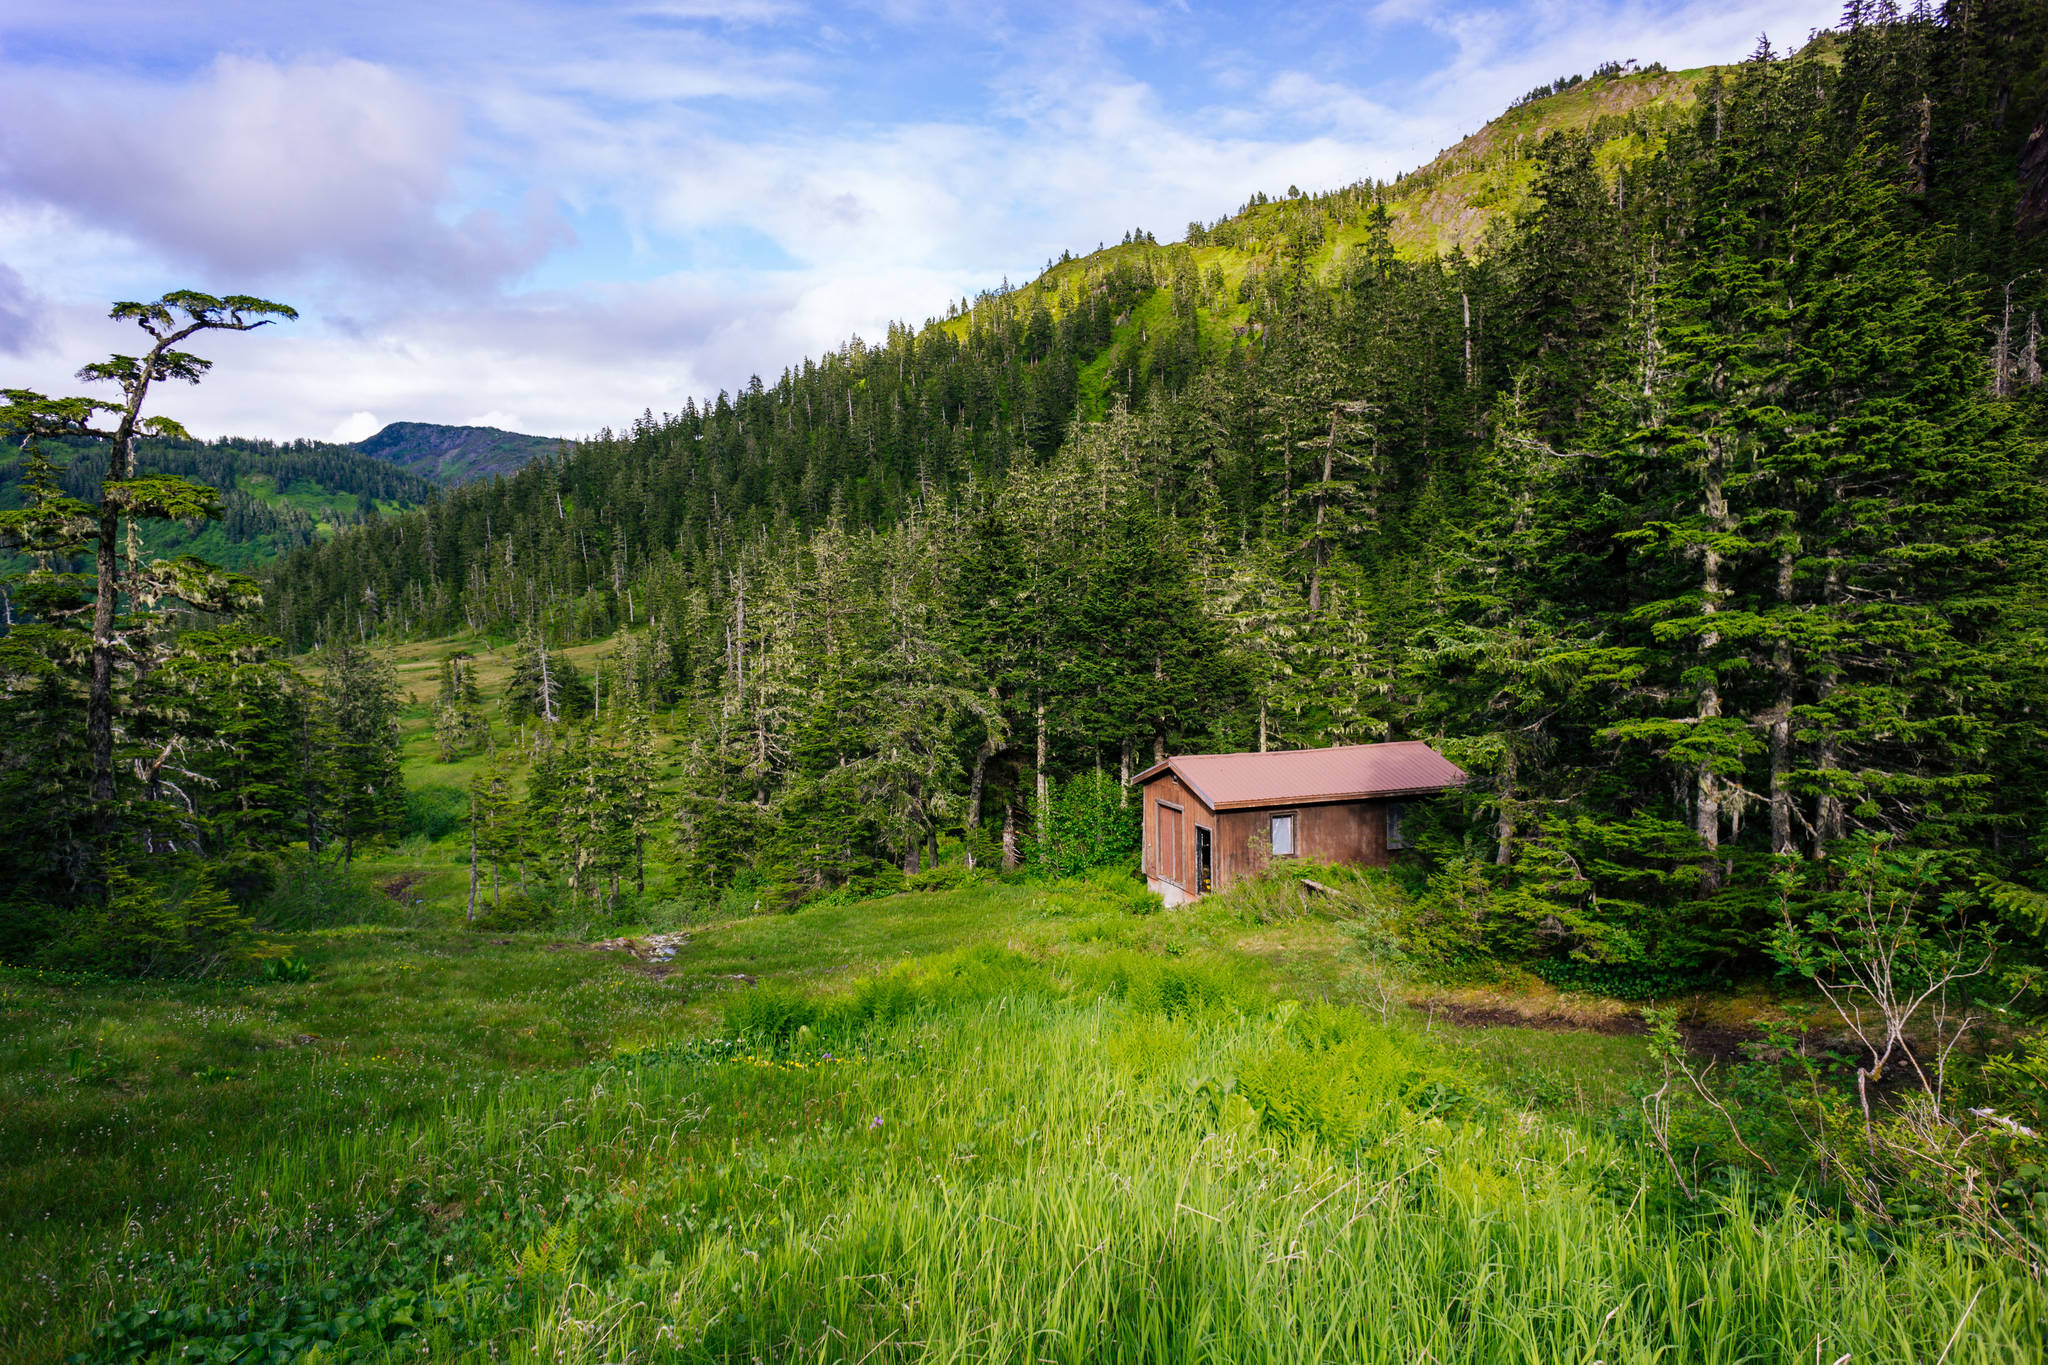 A seemingly abandoned Eaglecrest cabin on the way to Cropley Lake. (Gabe Donohoe | For the Juneau Empire)